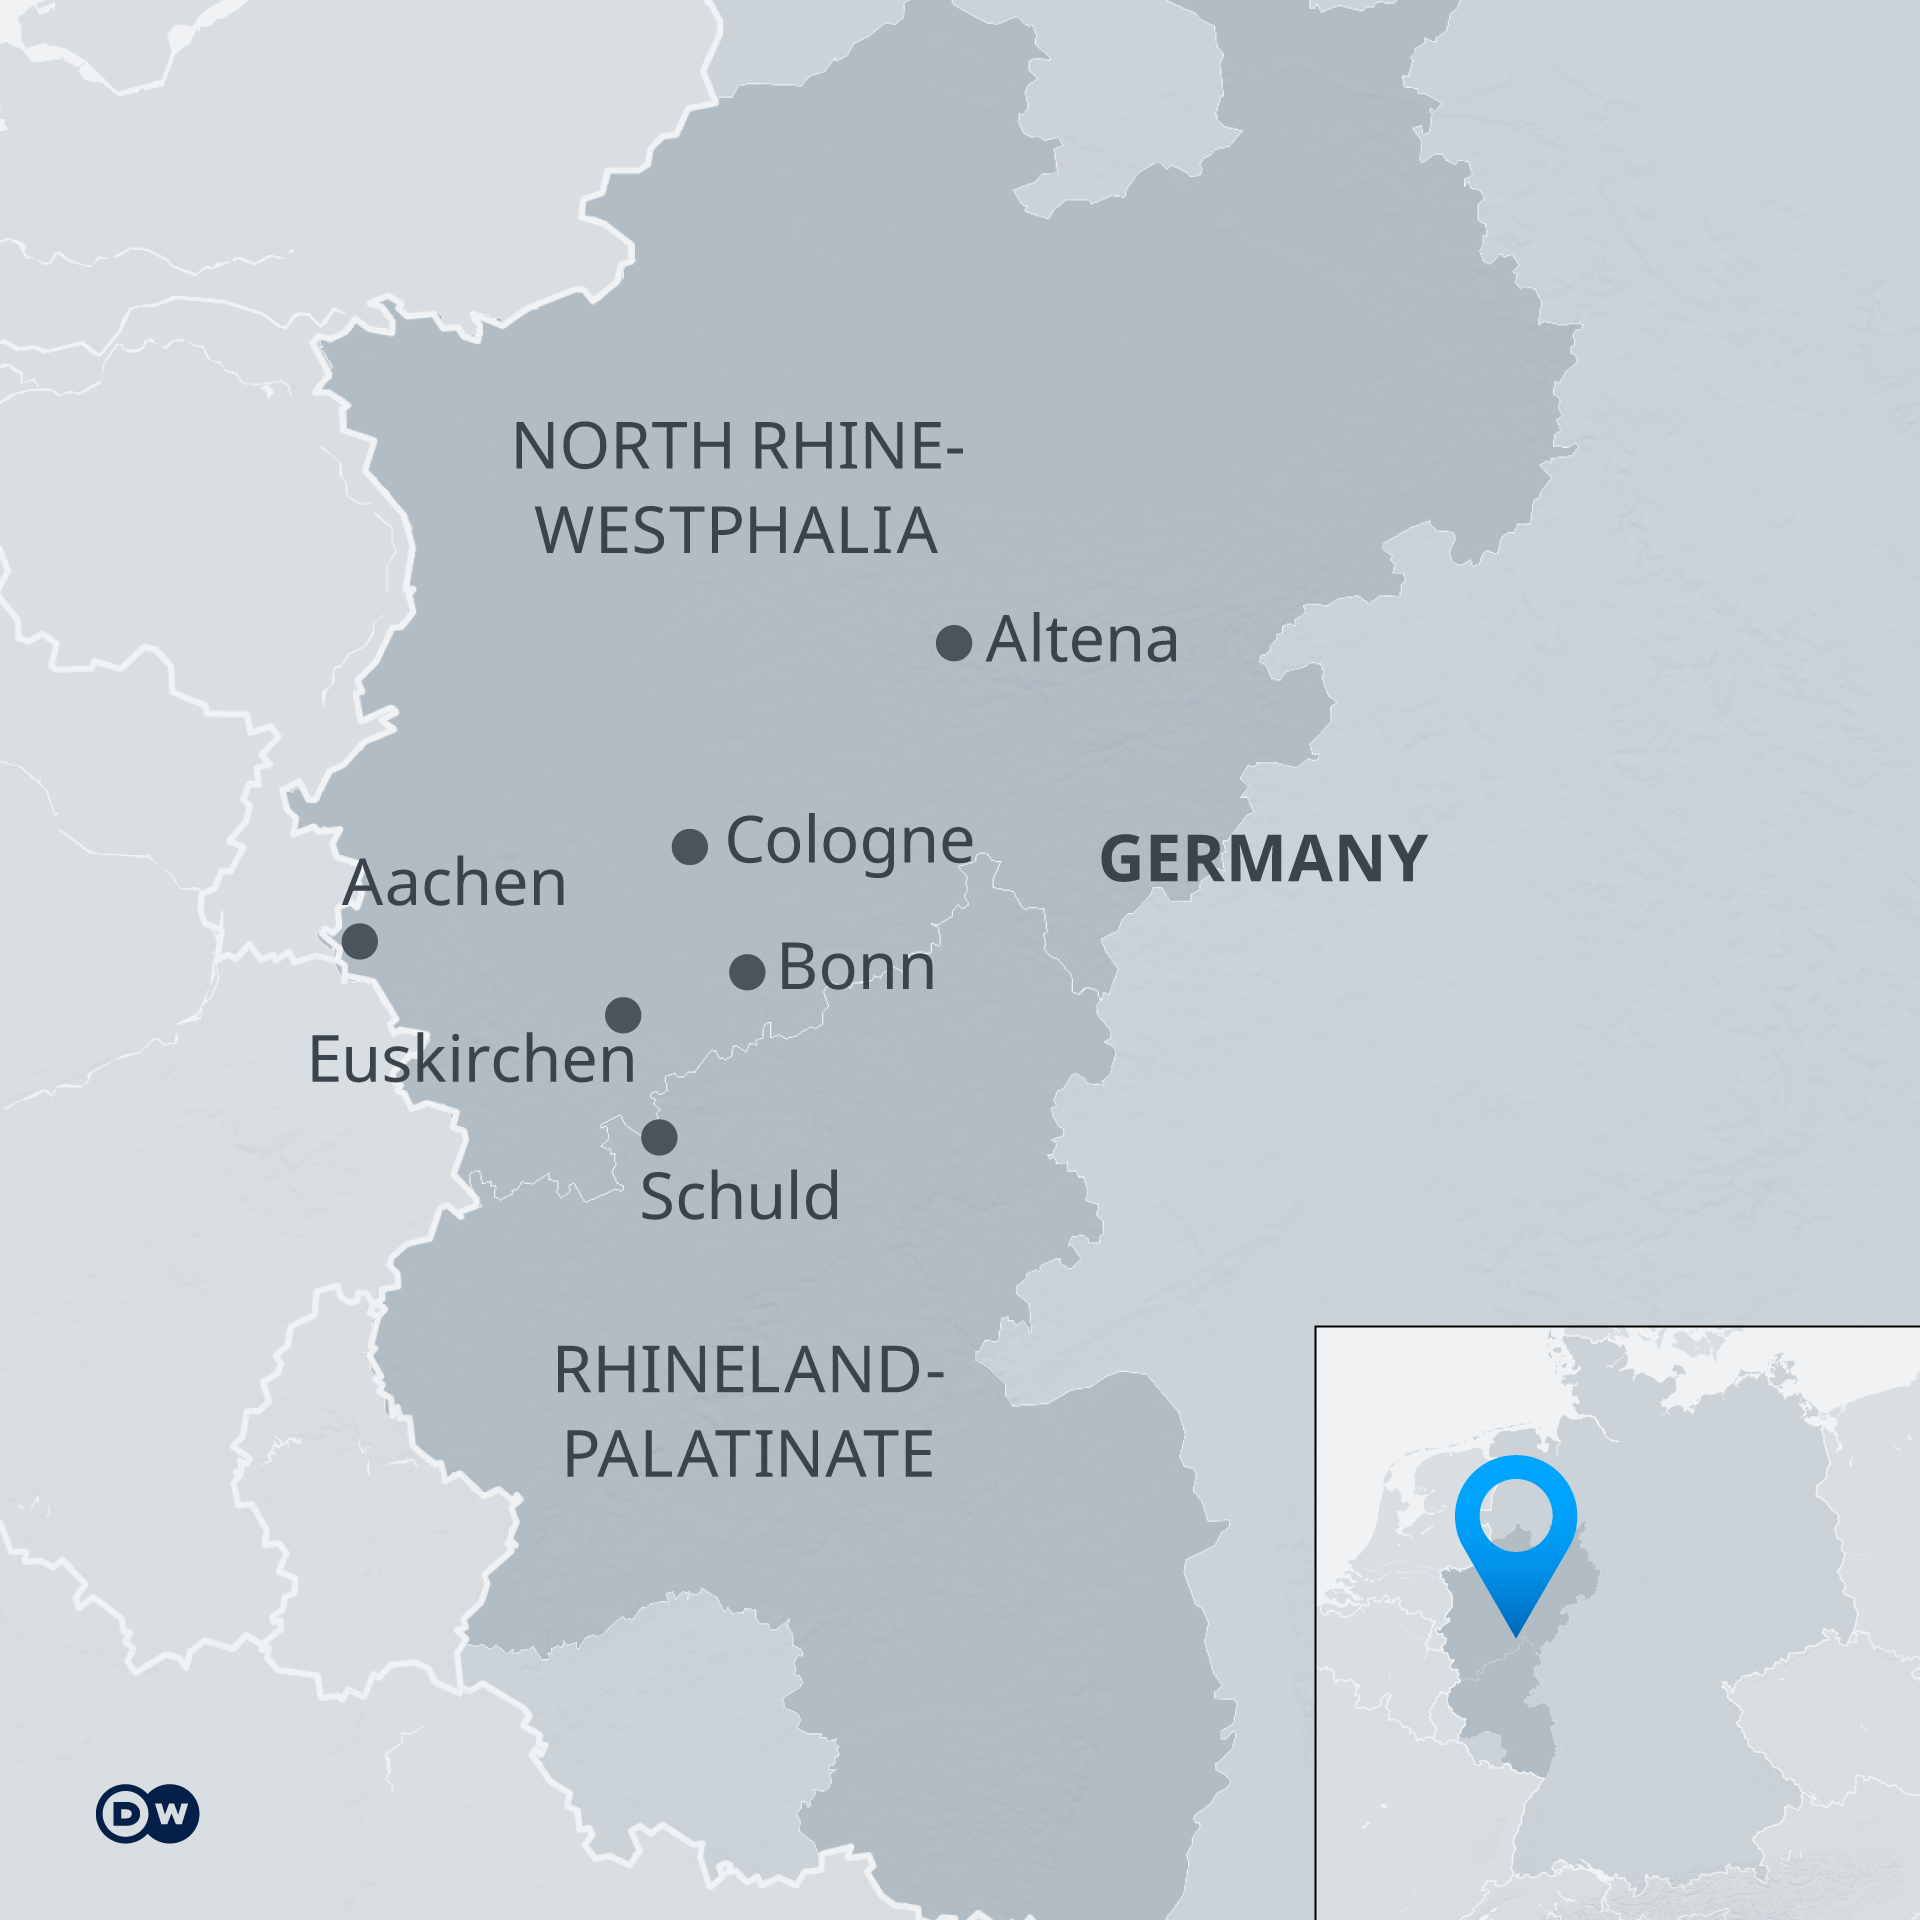 An infographic showing the areas most affected by the floods, in North Rhine-Westphalia and Rhineland-Pfalz